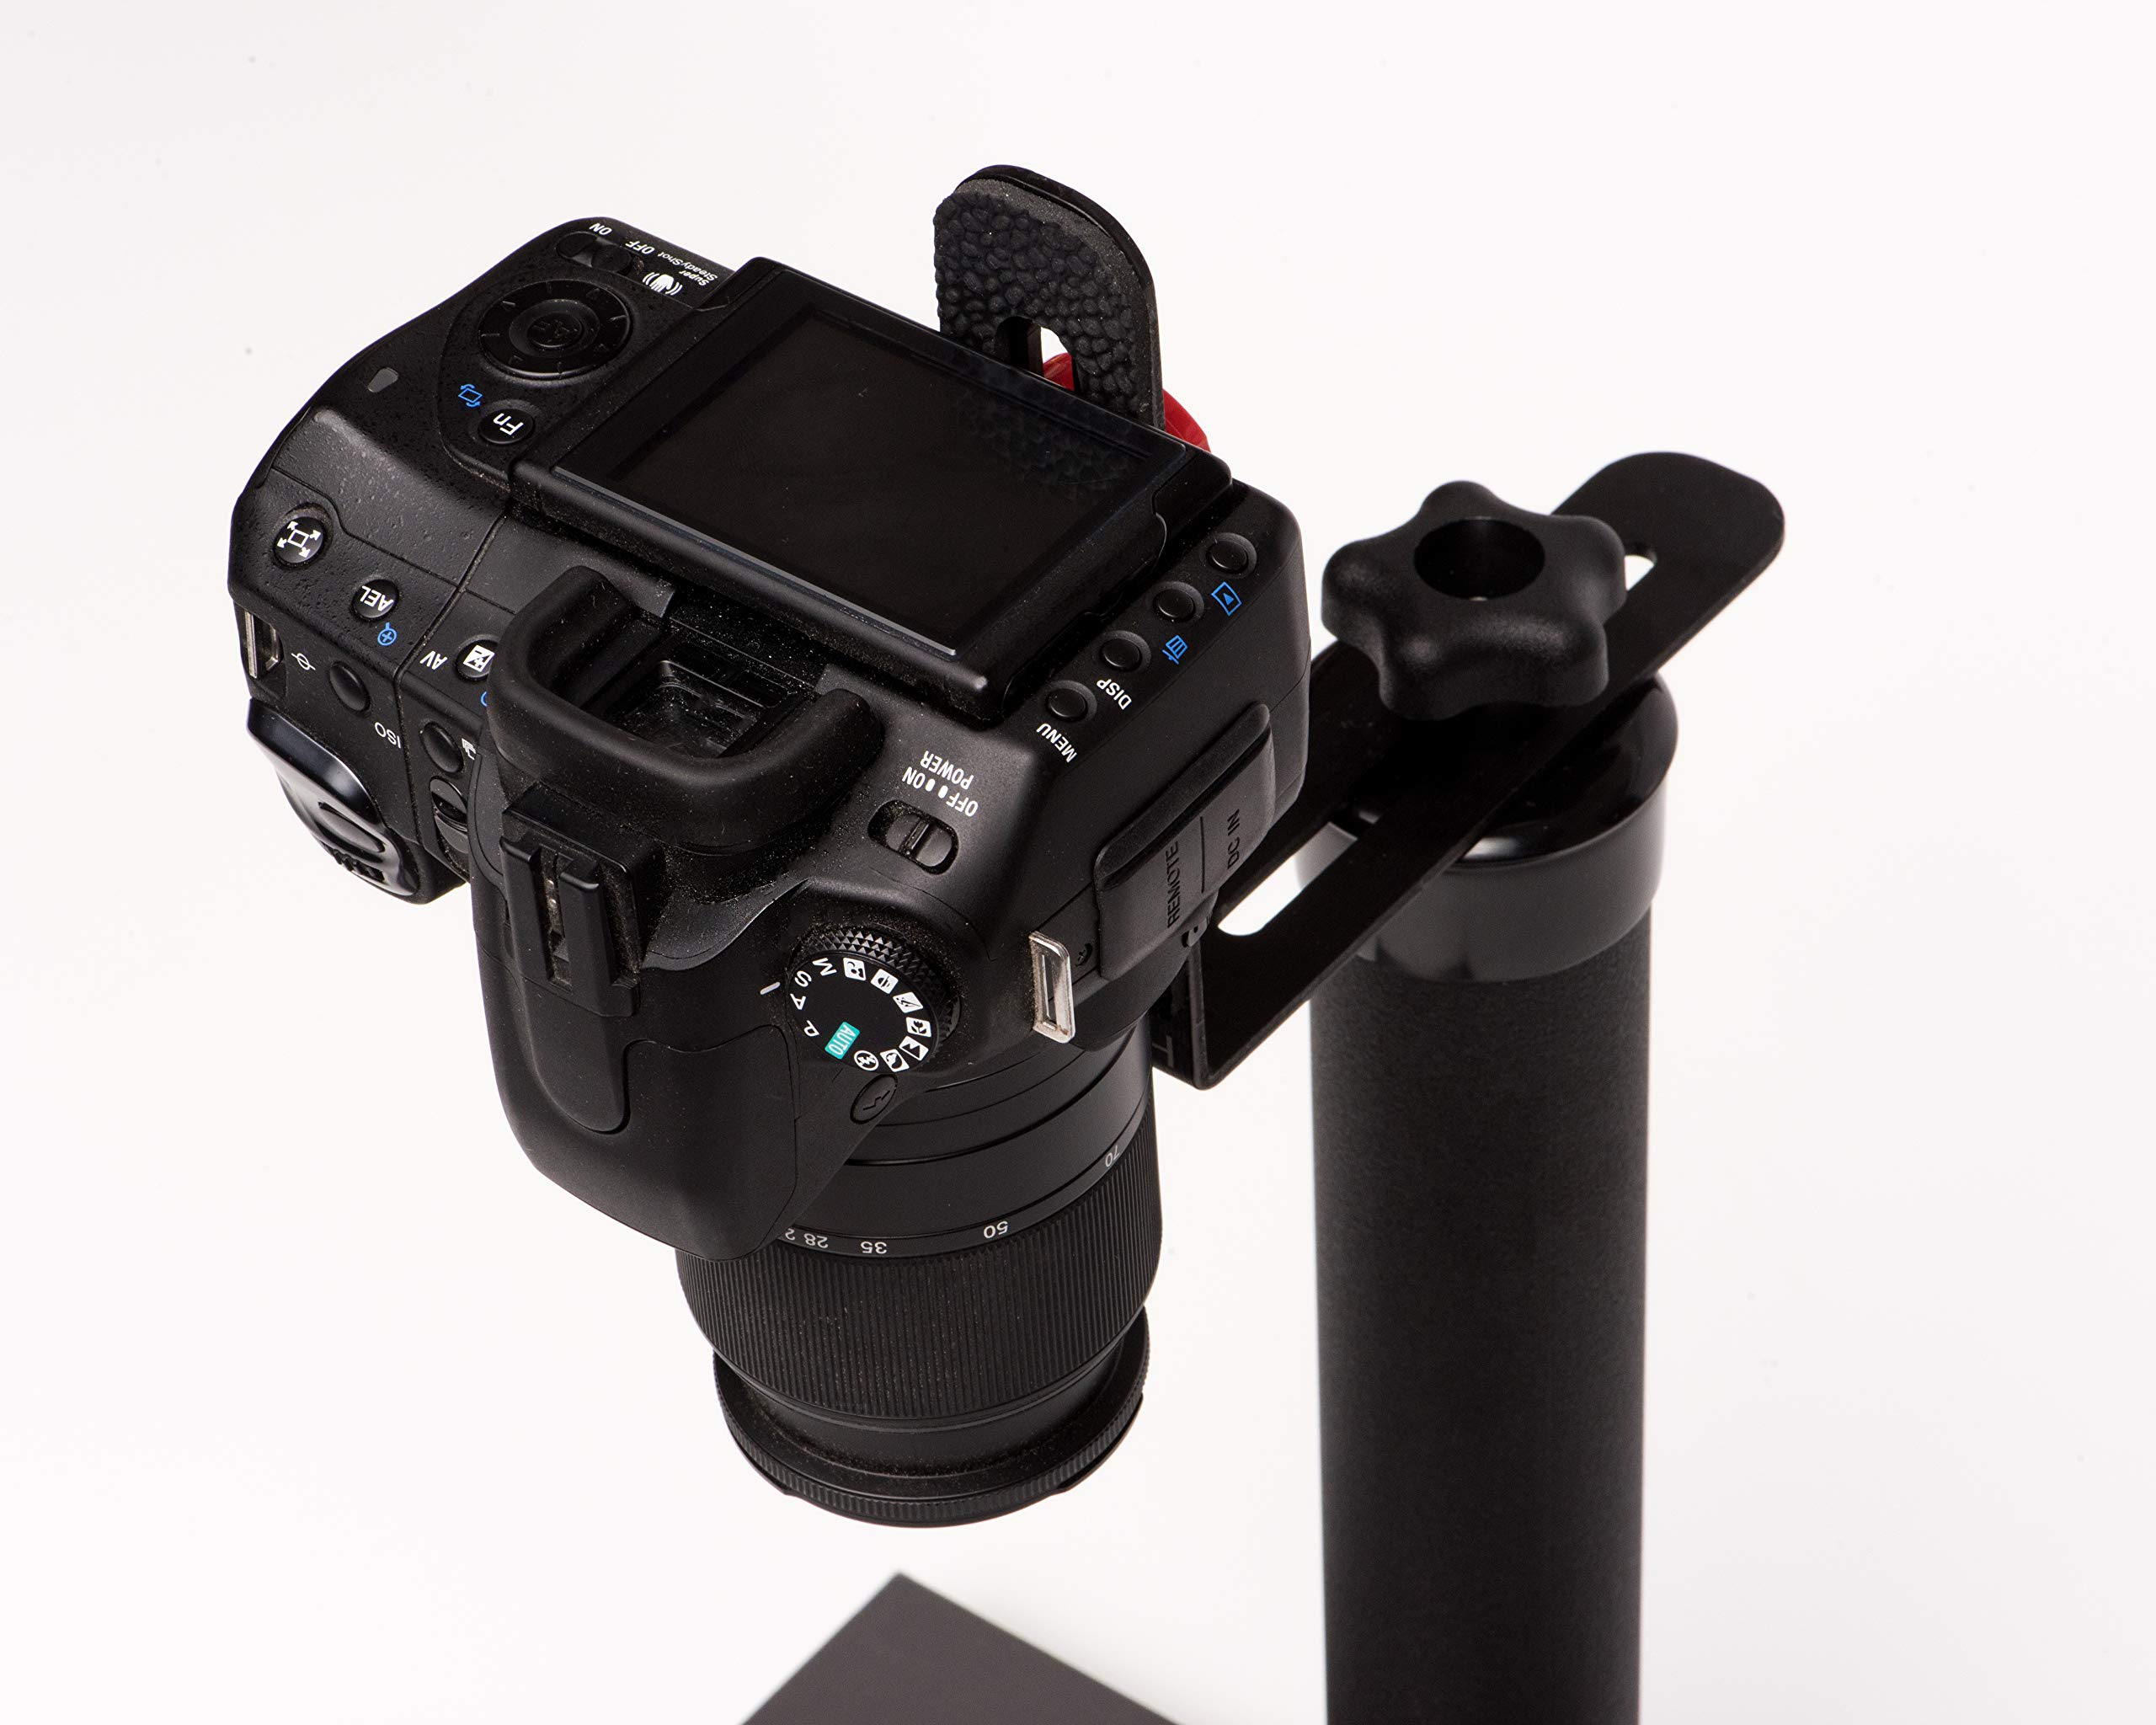 COPY STAND # HD400, A Compact & Small Tool for Digitizing Documents, Photos, or Small Objects with Today's SLR Super Megapixel Cameras by Stand Company (Image #6)